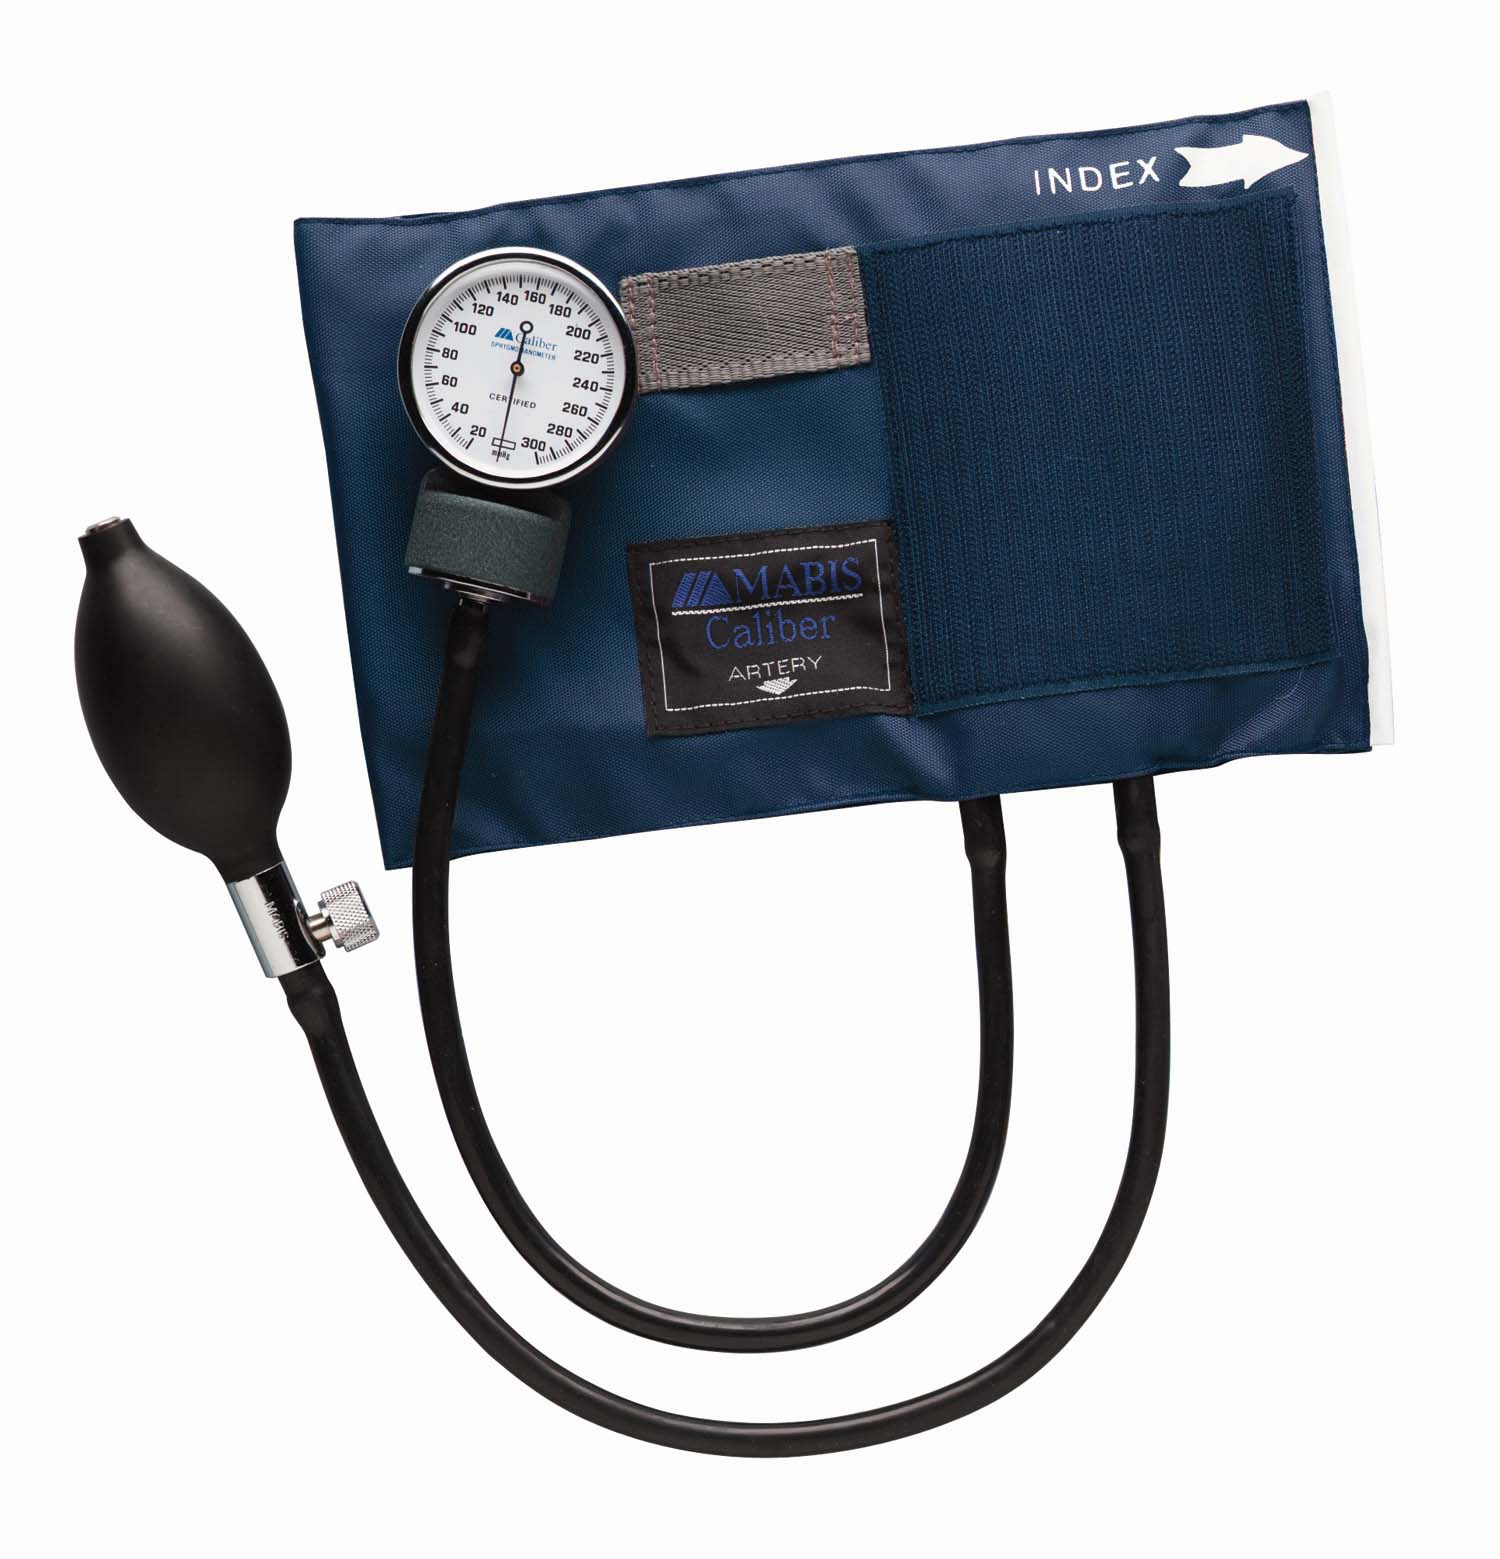 caliber-aneroid-sphygmomanometer-blue-nylon-cuff-thigh-01-130-017-lr.jpg